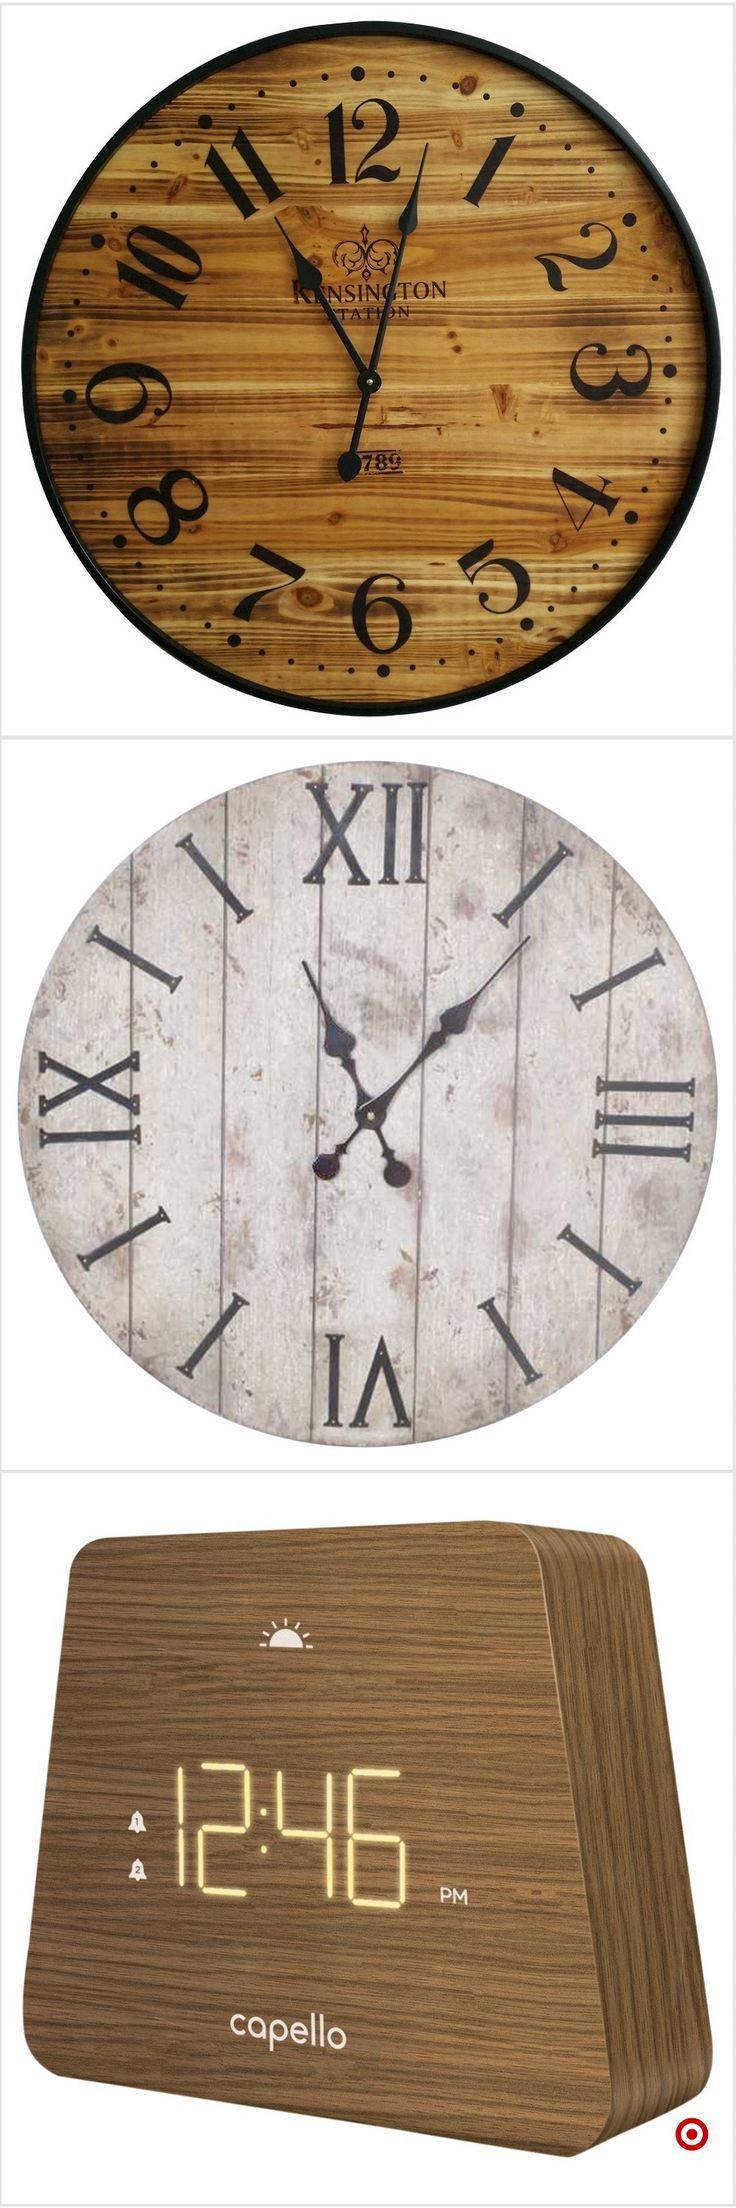 Shop Target for decorative clock you will love at great low prices. Free shipping on all orders or free same-day pick-up in store.